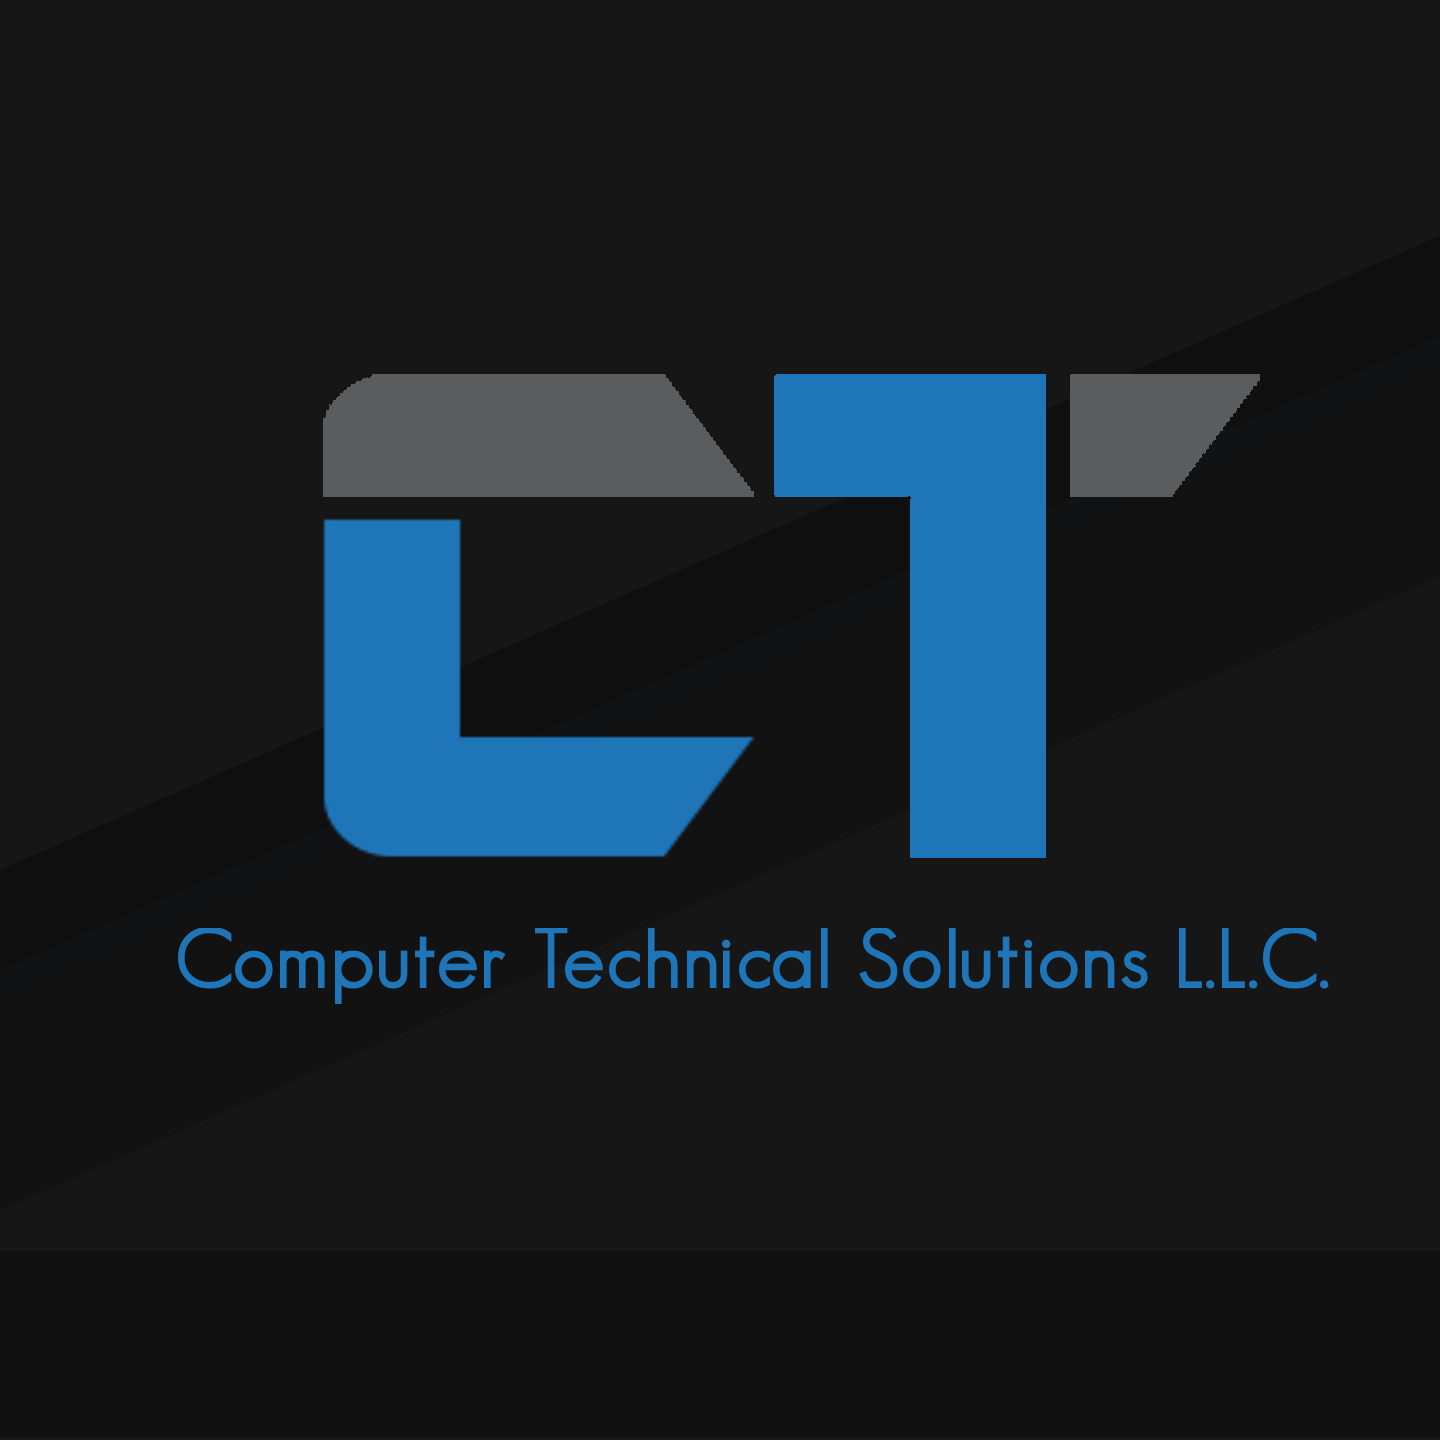 COMPUTER TECHNICAL SOLUTIONS LLC